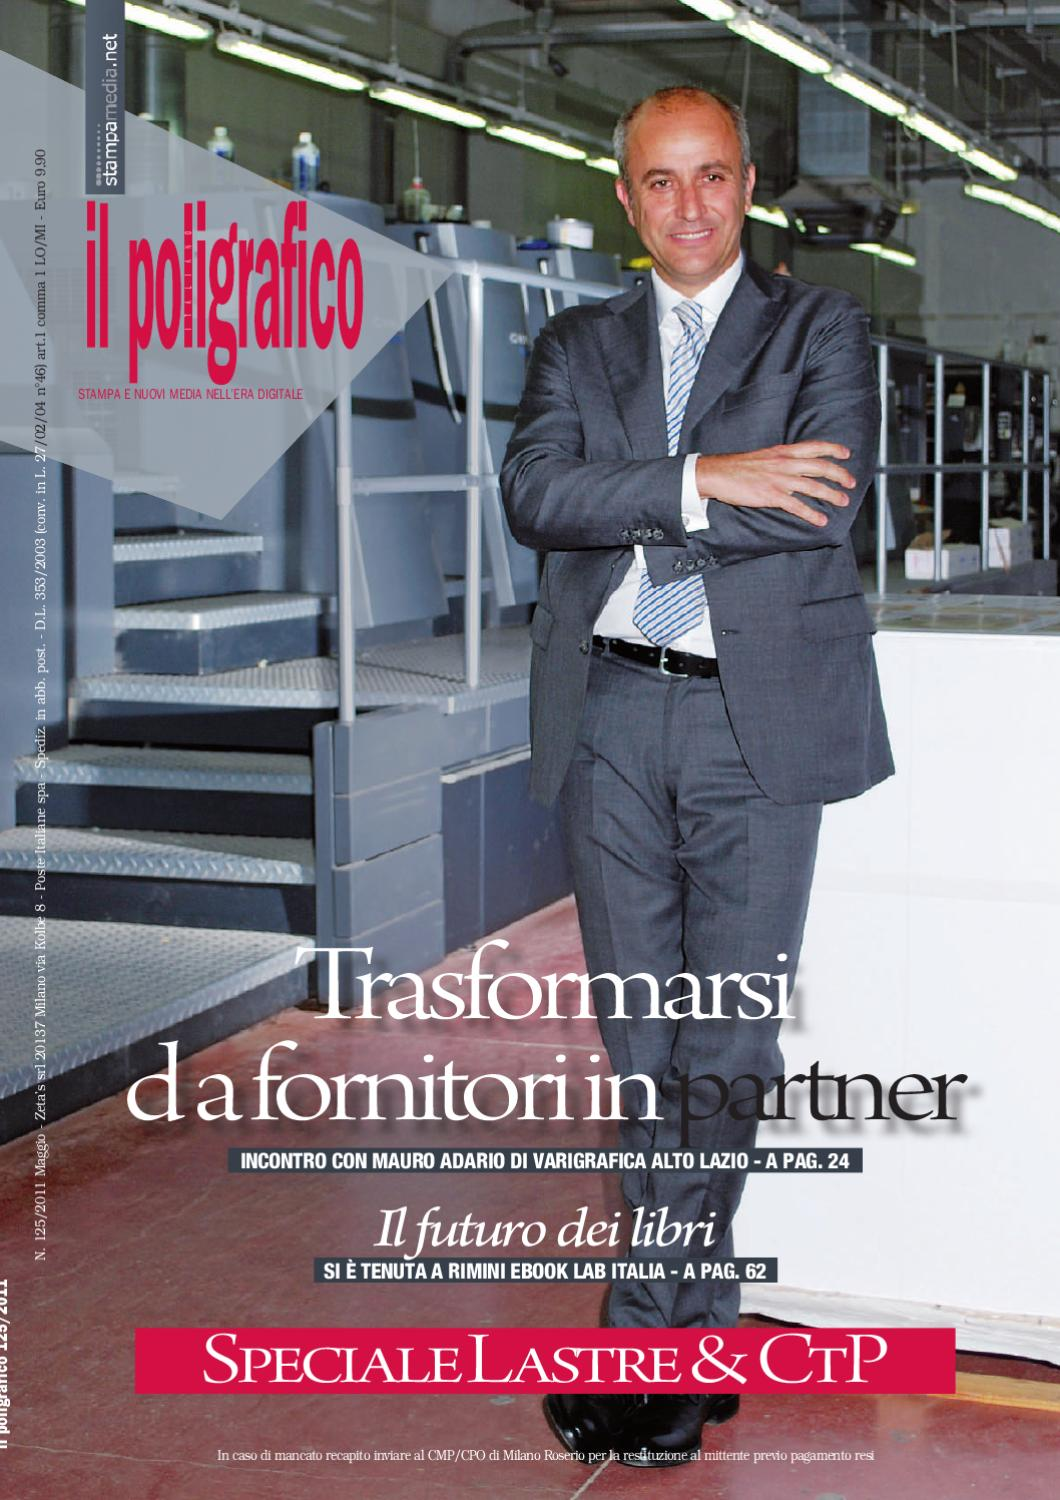 9e396660d2 Il Poligrafico, n. 125, Maggio 2011 by Stratego Group Srl - issuu